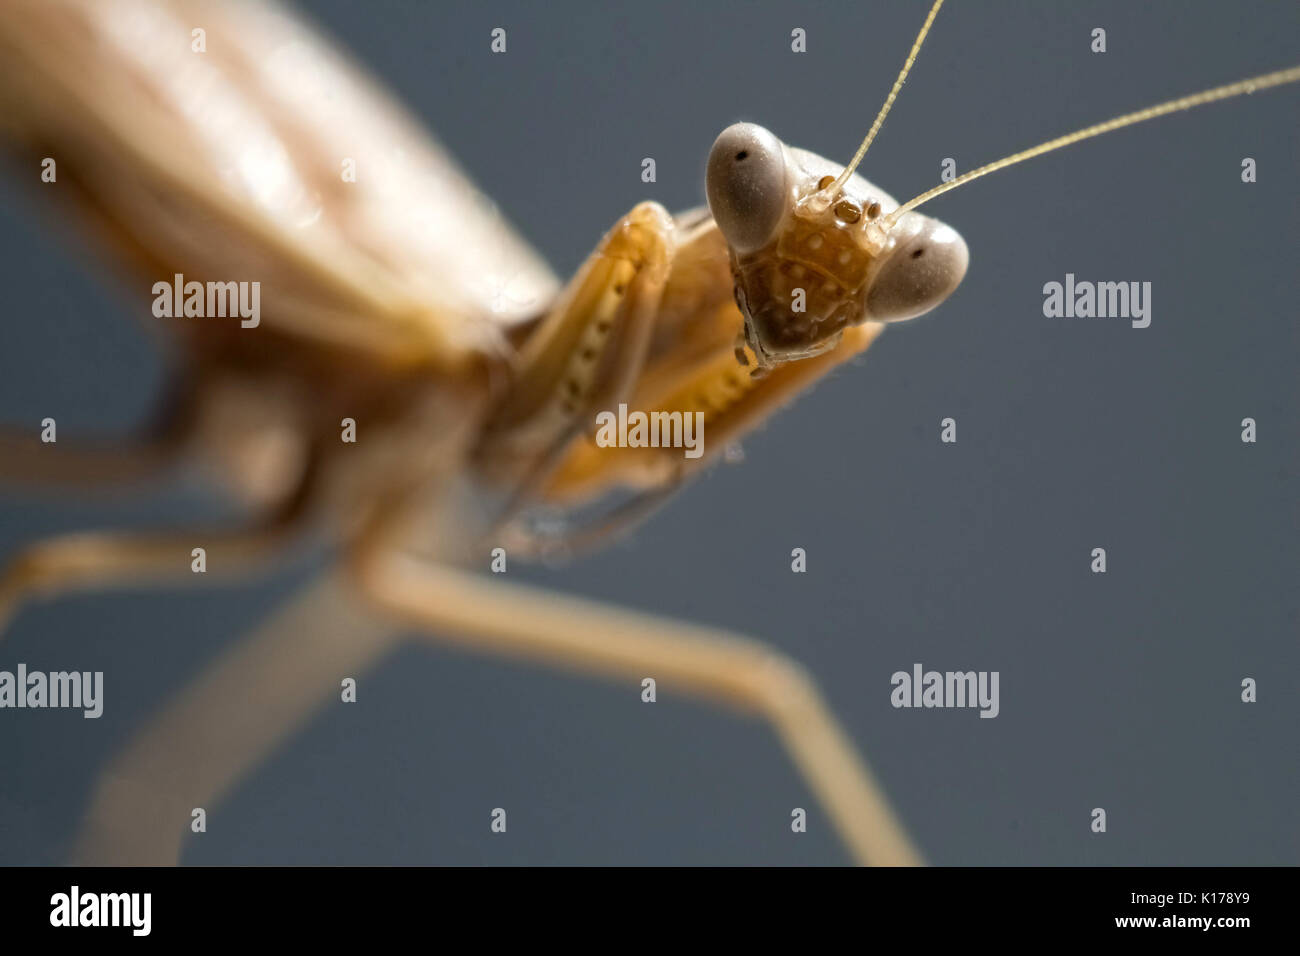 Sight of a mantis - portrait of an insect - Stock Image